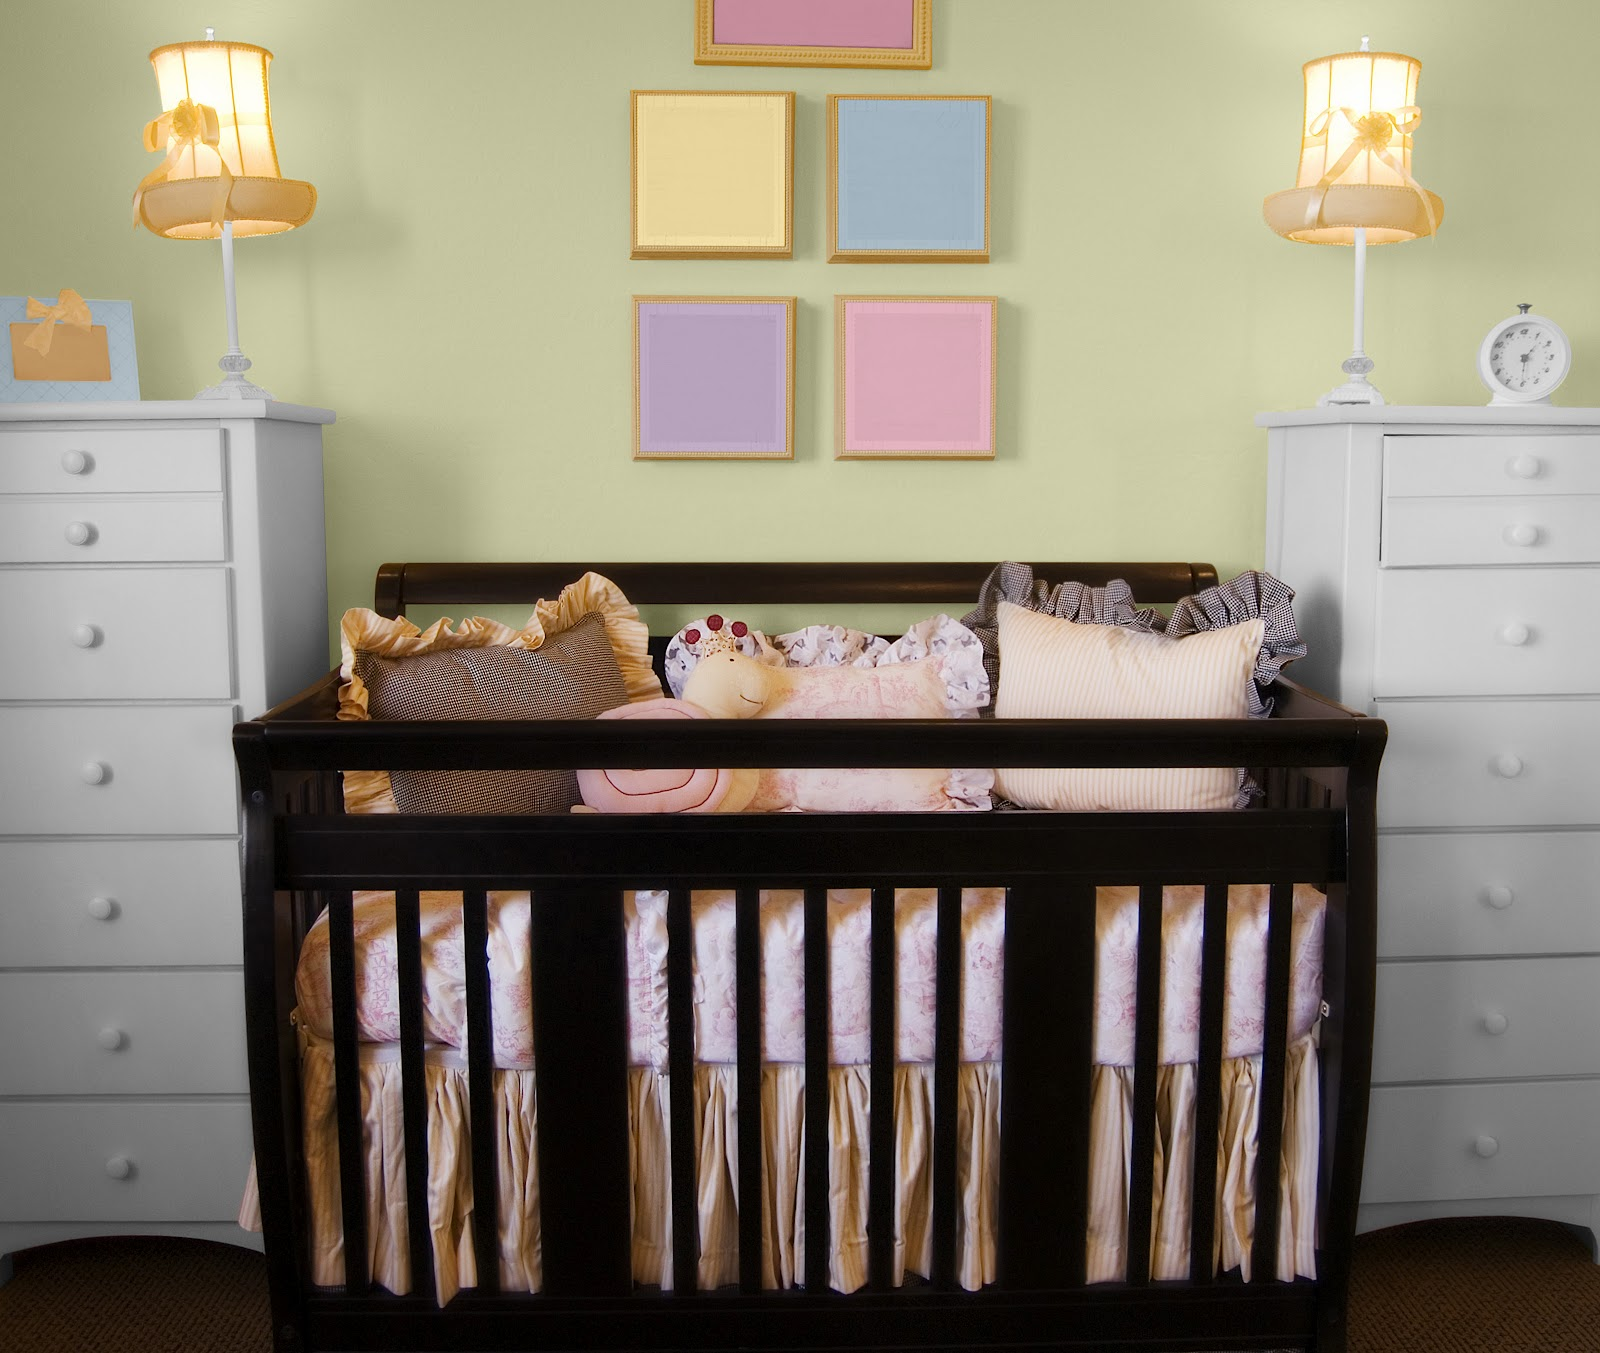 nursery decor ideas top 10 baby nursery room colors and decorating ideas